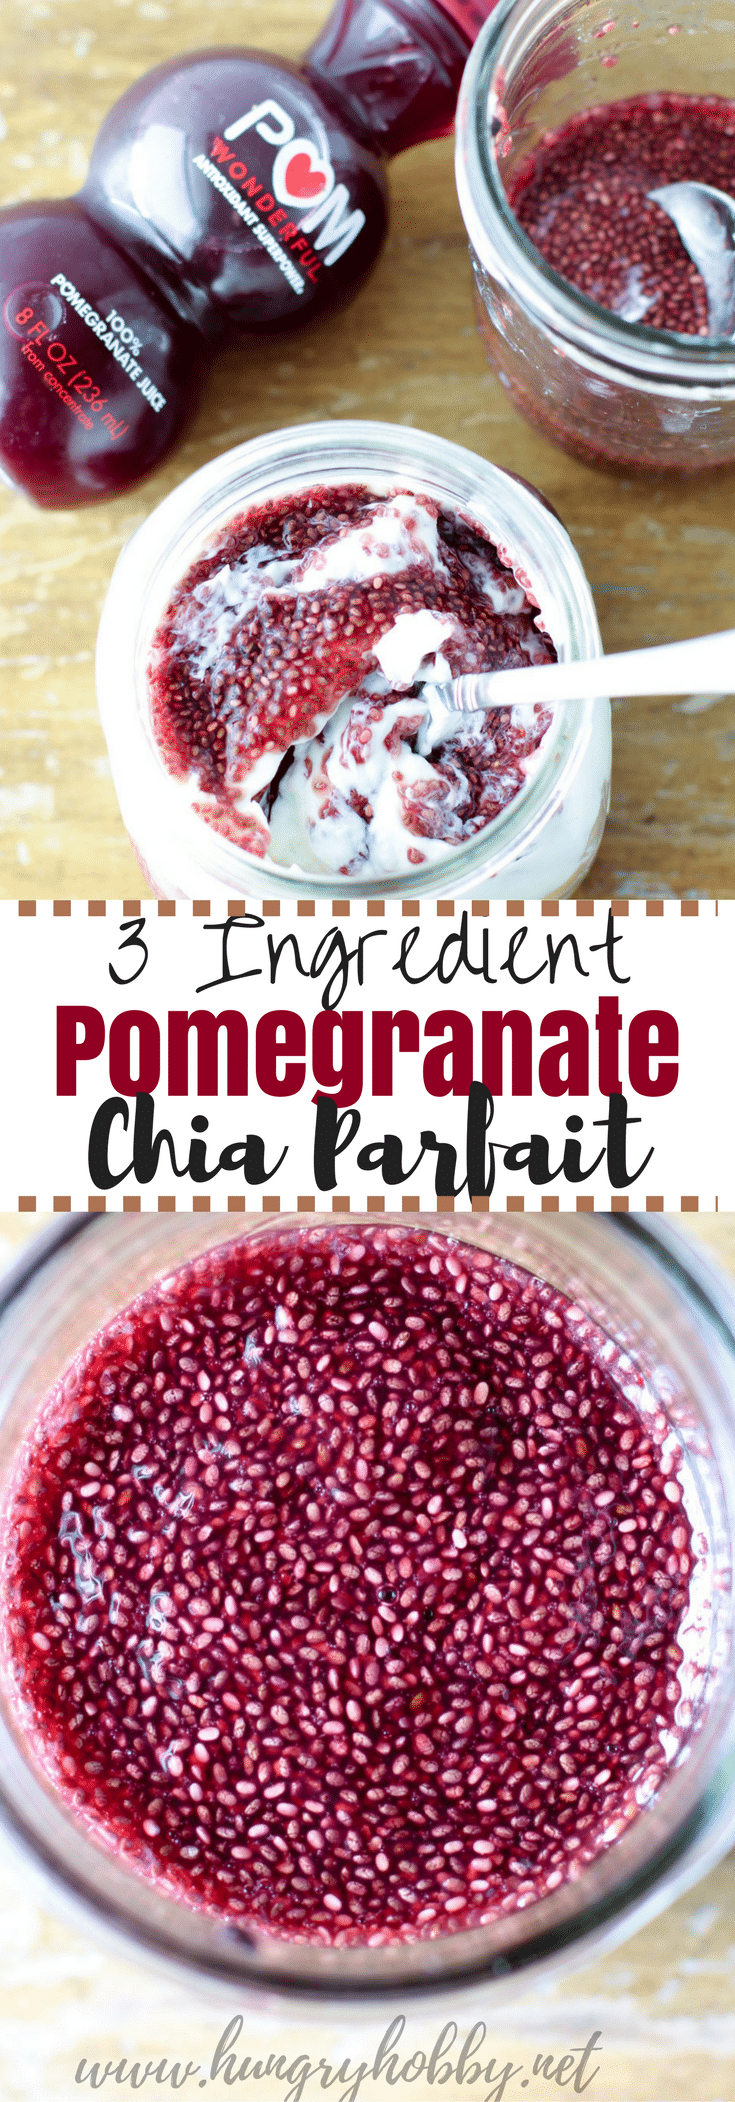 Pomegranate Chia Parfait (3 Ingredients) is an easy postworkout breakfast or snack full of the right nutrients to help you recover! #sponsored #crazyhealthy @pomwonderful #reciperedux